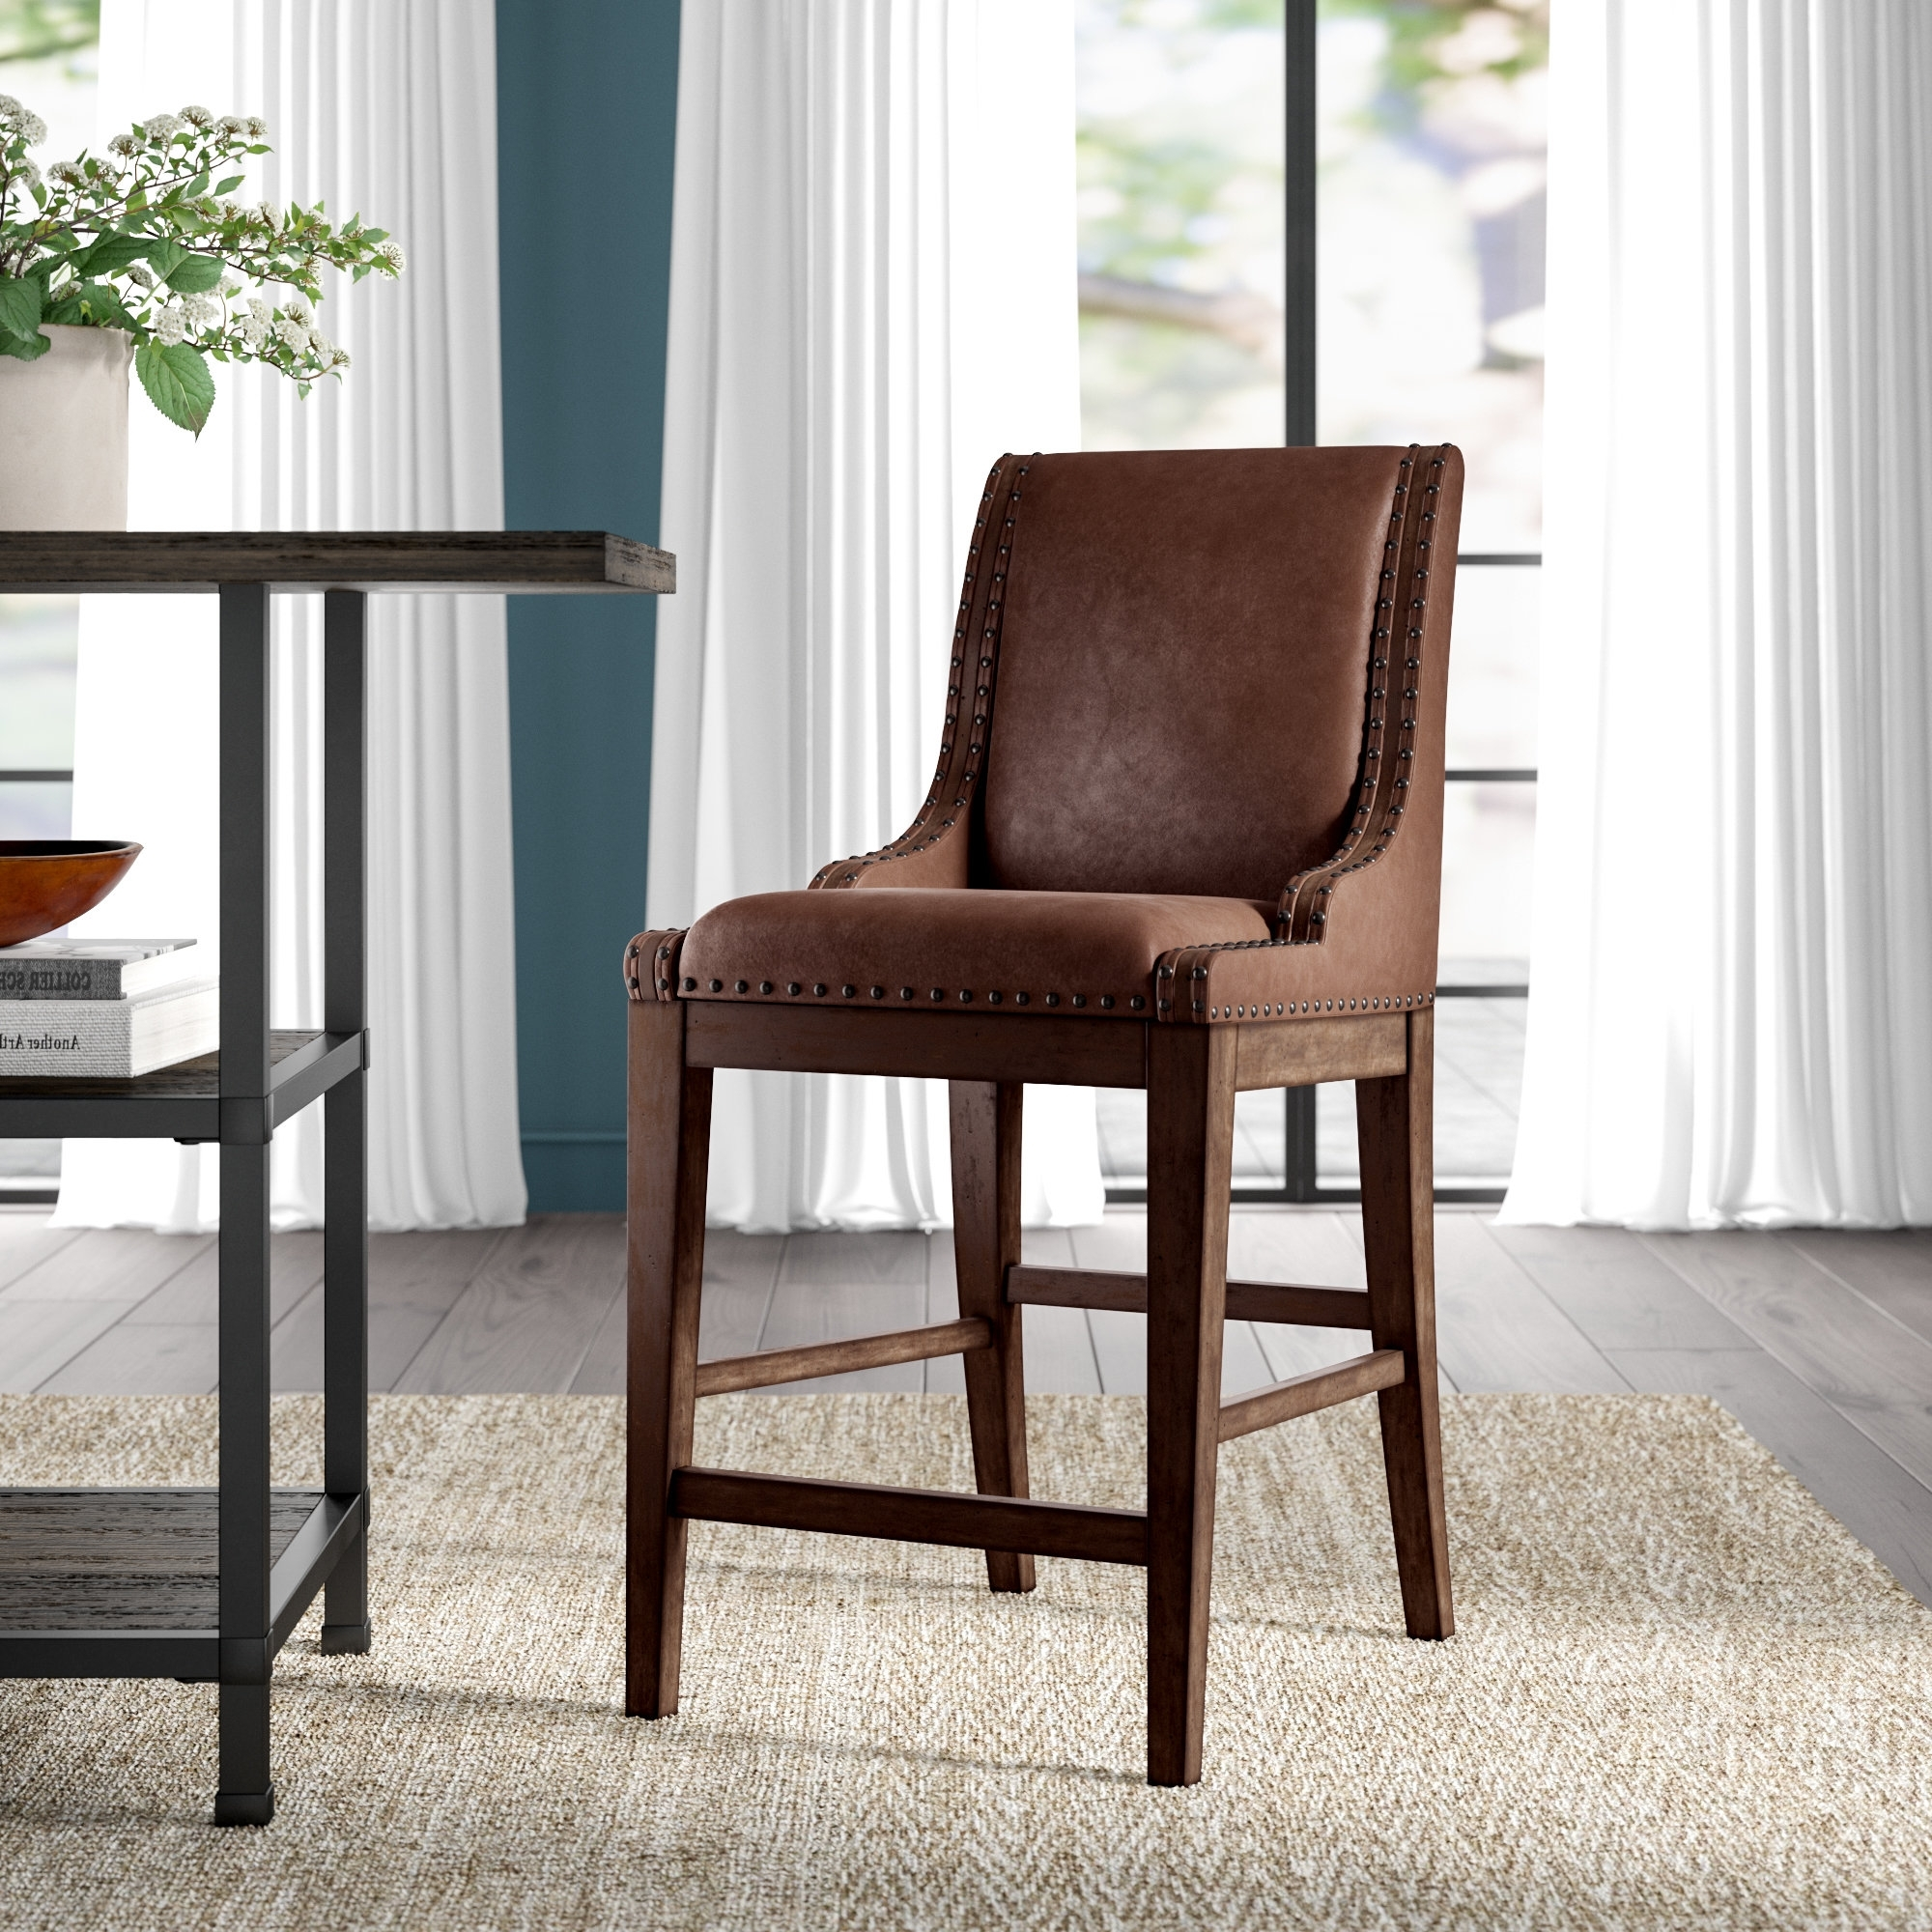 Greyleigh Cairo Upholstered Dining Chair (View 22 of 25)